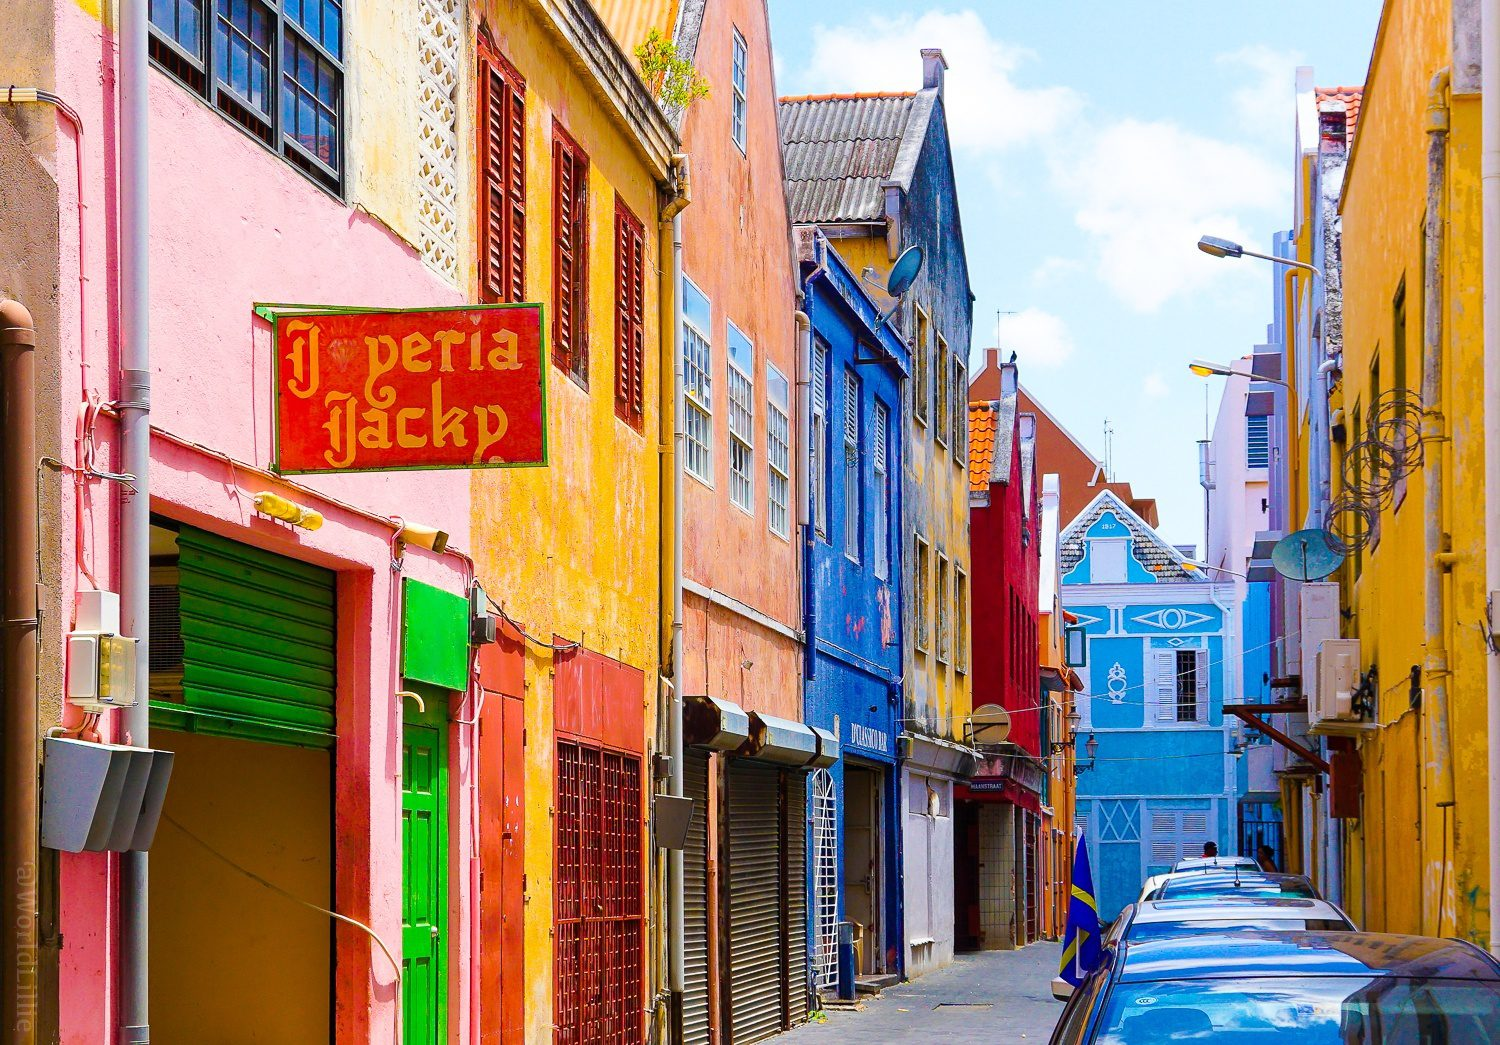 Willemstad, Curaçao is a glorious rainbow of color.